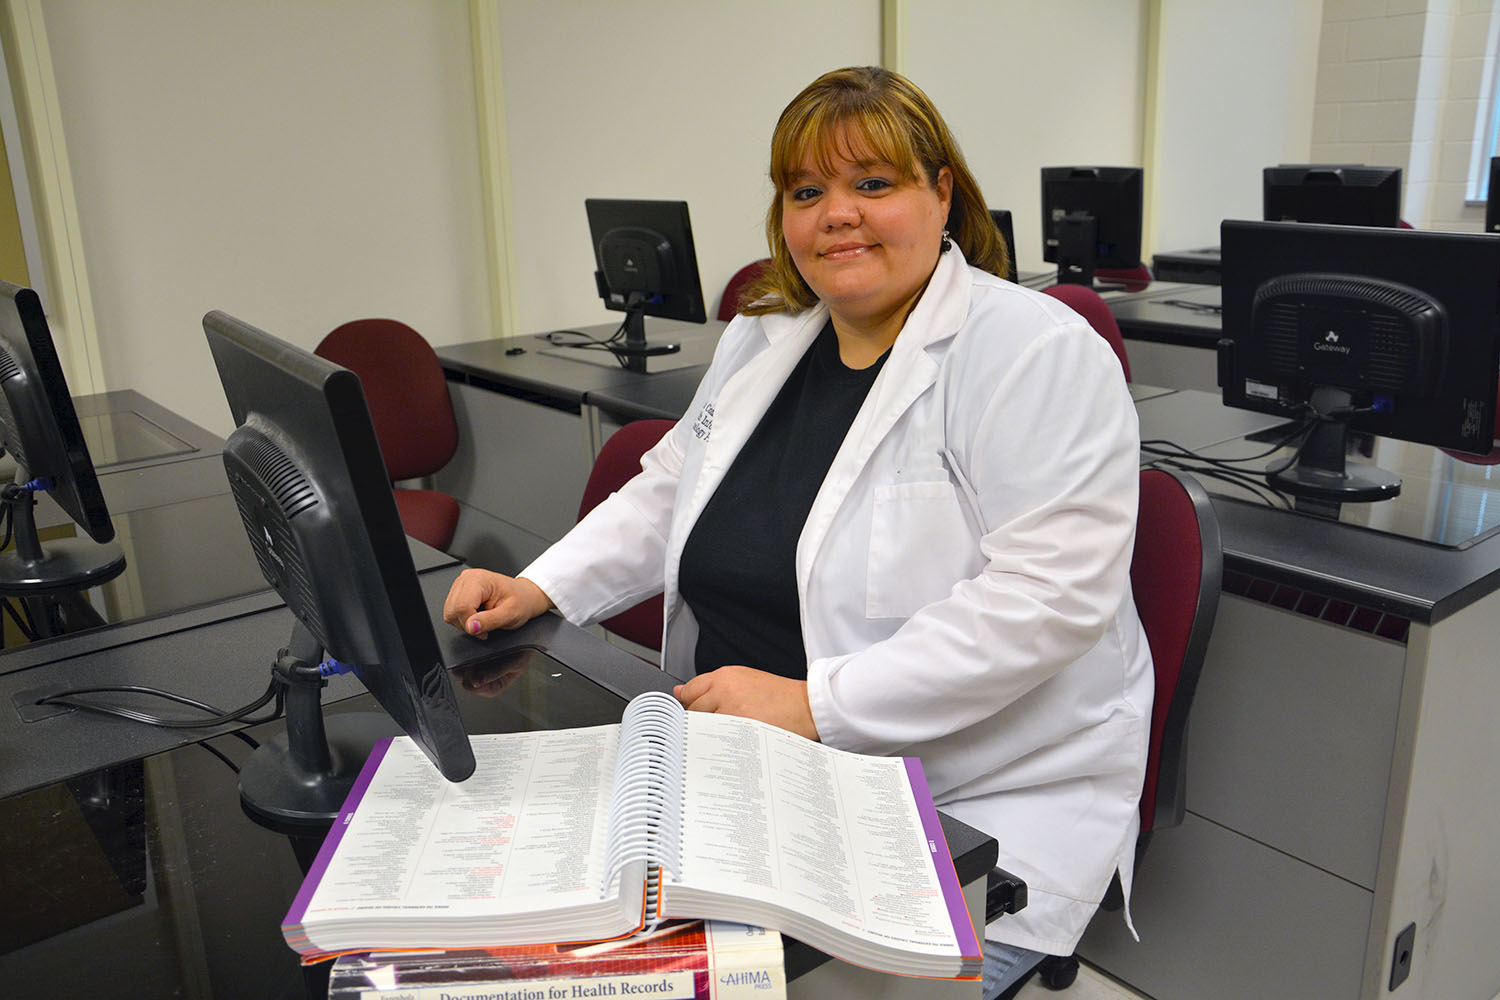 Health Information Technology student sits at a desk in a computer lab with a text book open in front of her.